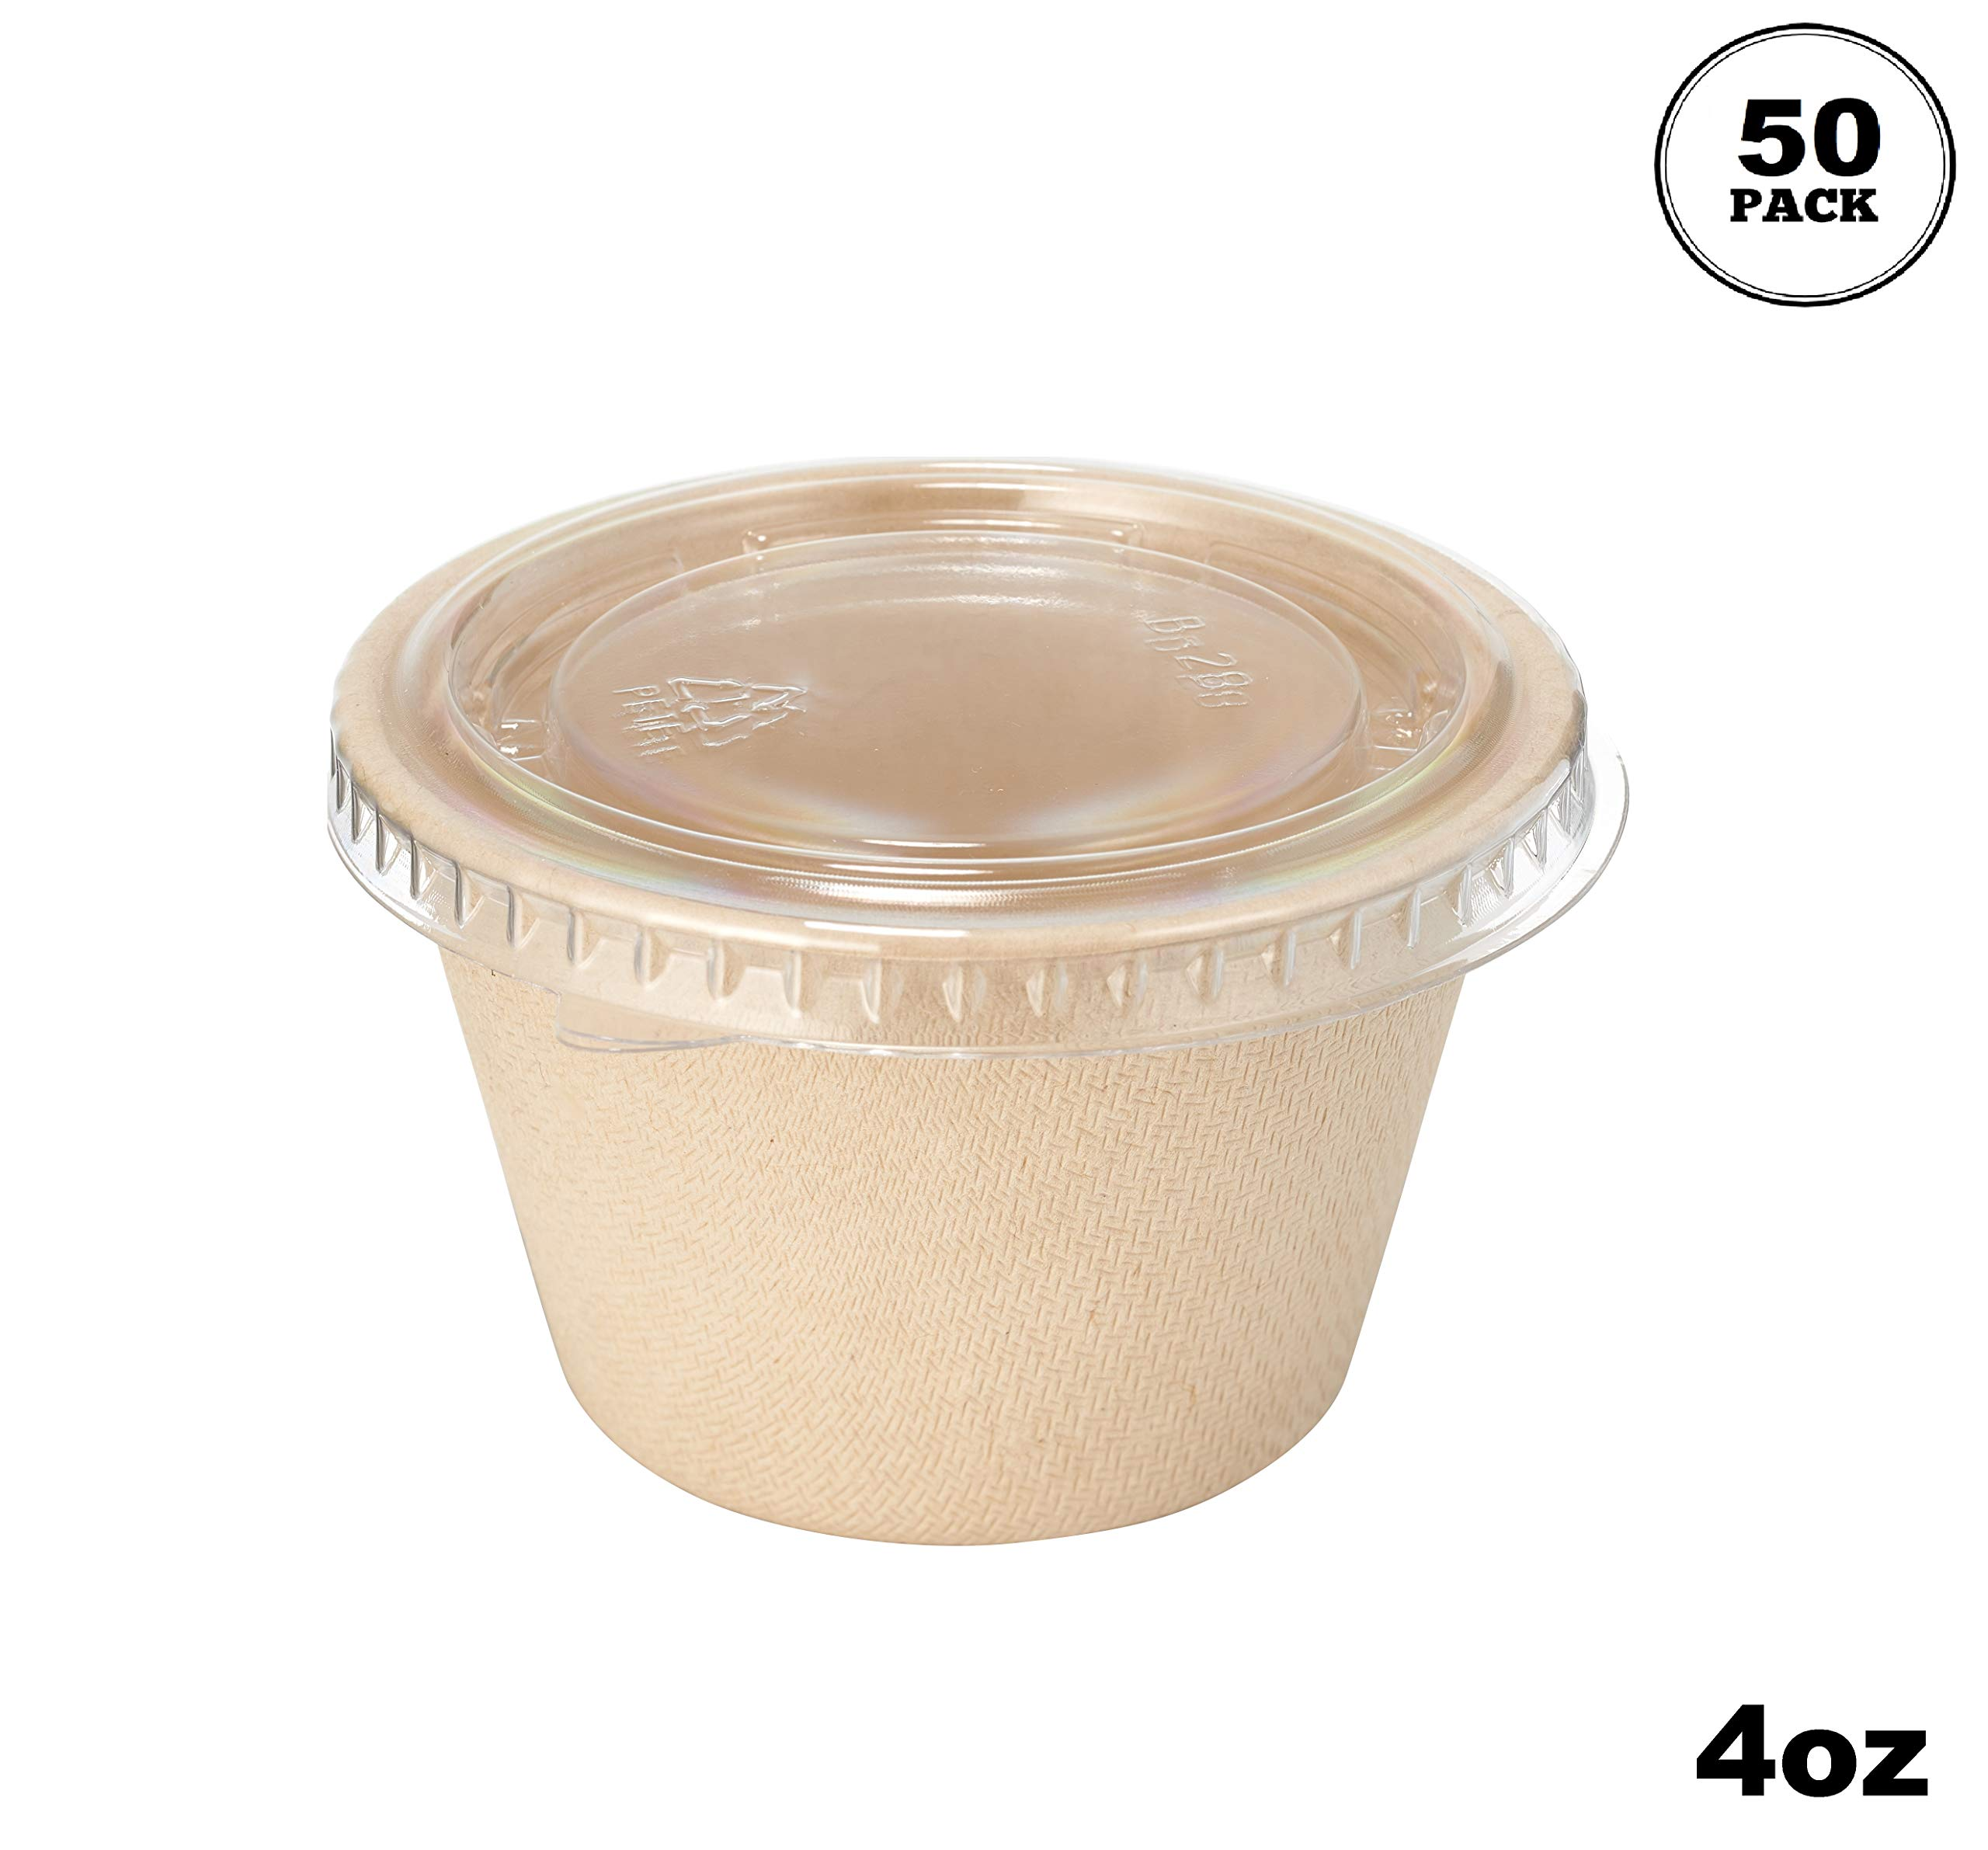 [50 Pack] 4 Oz Compostable Condiment Souffle Bagasse Cups with Lids - Portion Cup with Lid Sugarcane, Biodegradable Perfect for Sauces, Samples, Condiments, Slime, Jello Shot, Food Storage by EcoQuality